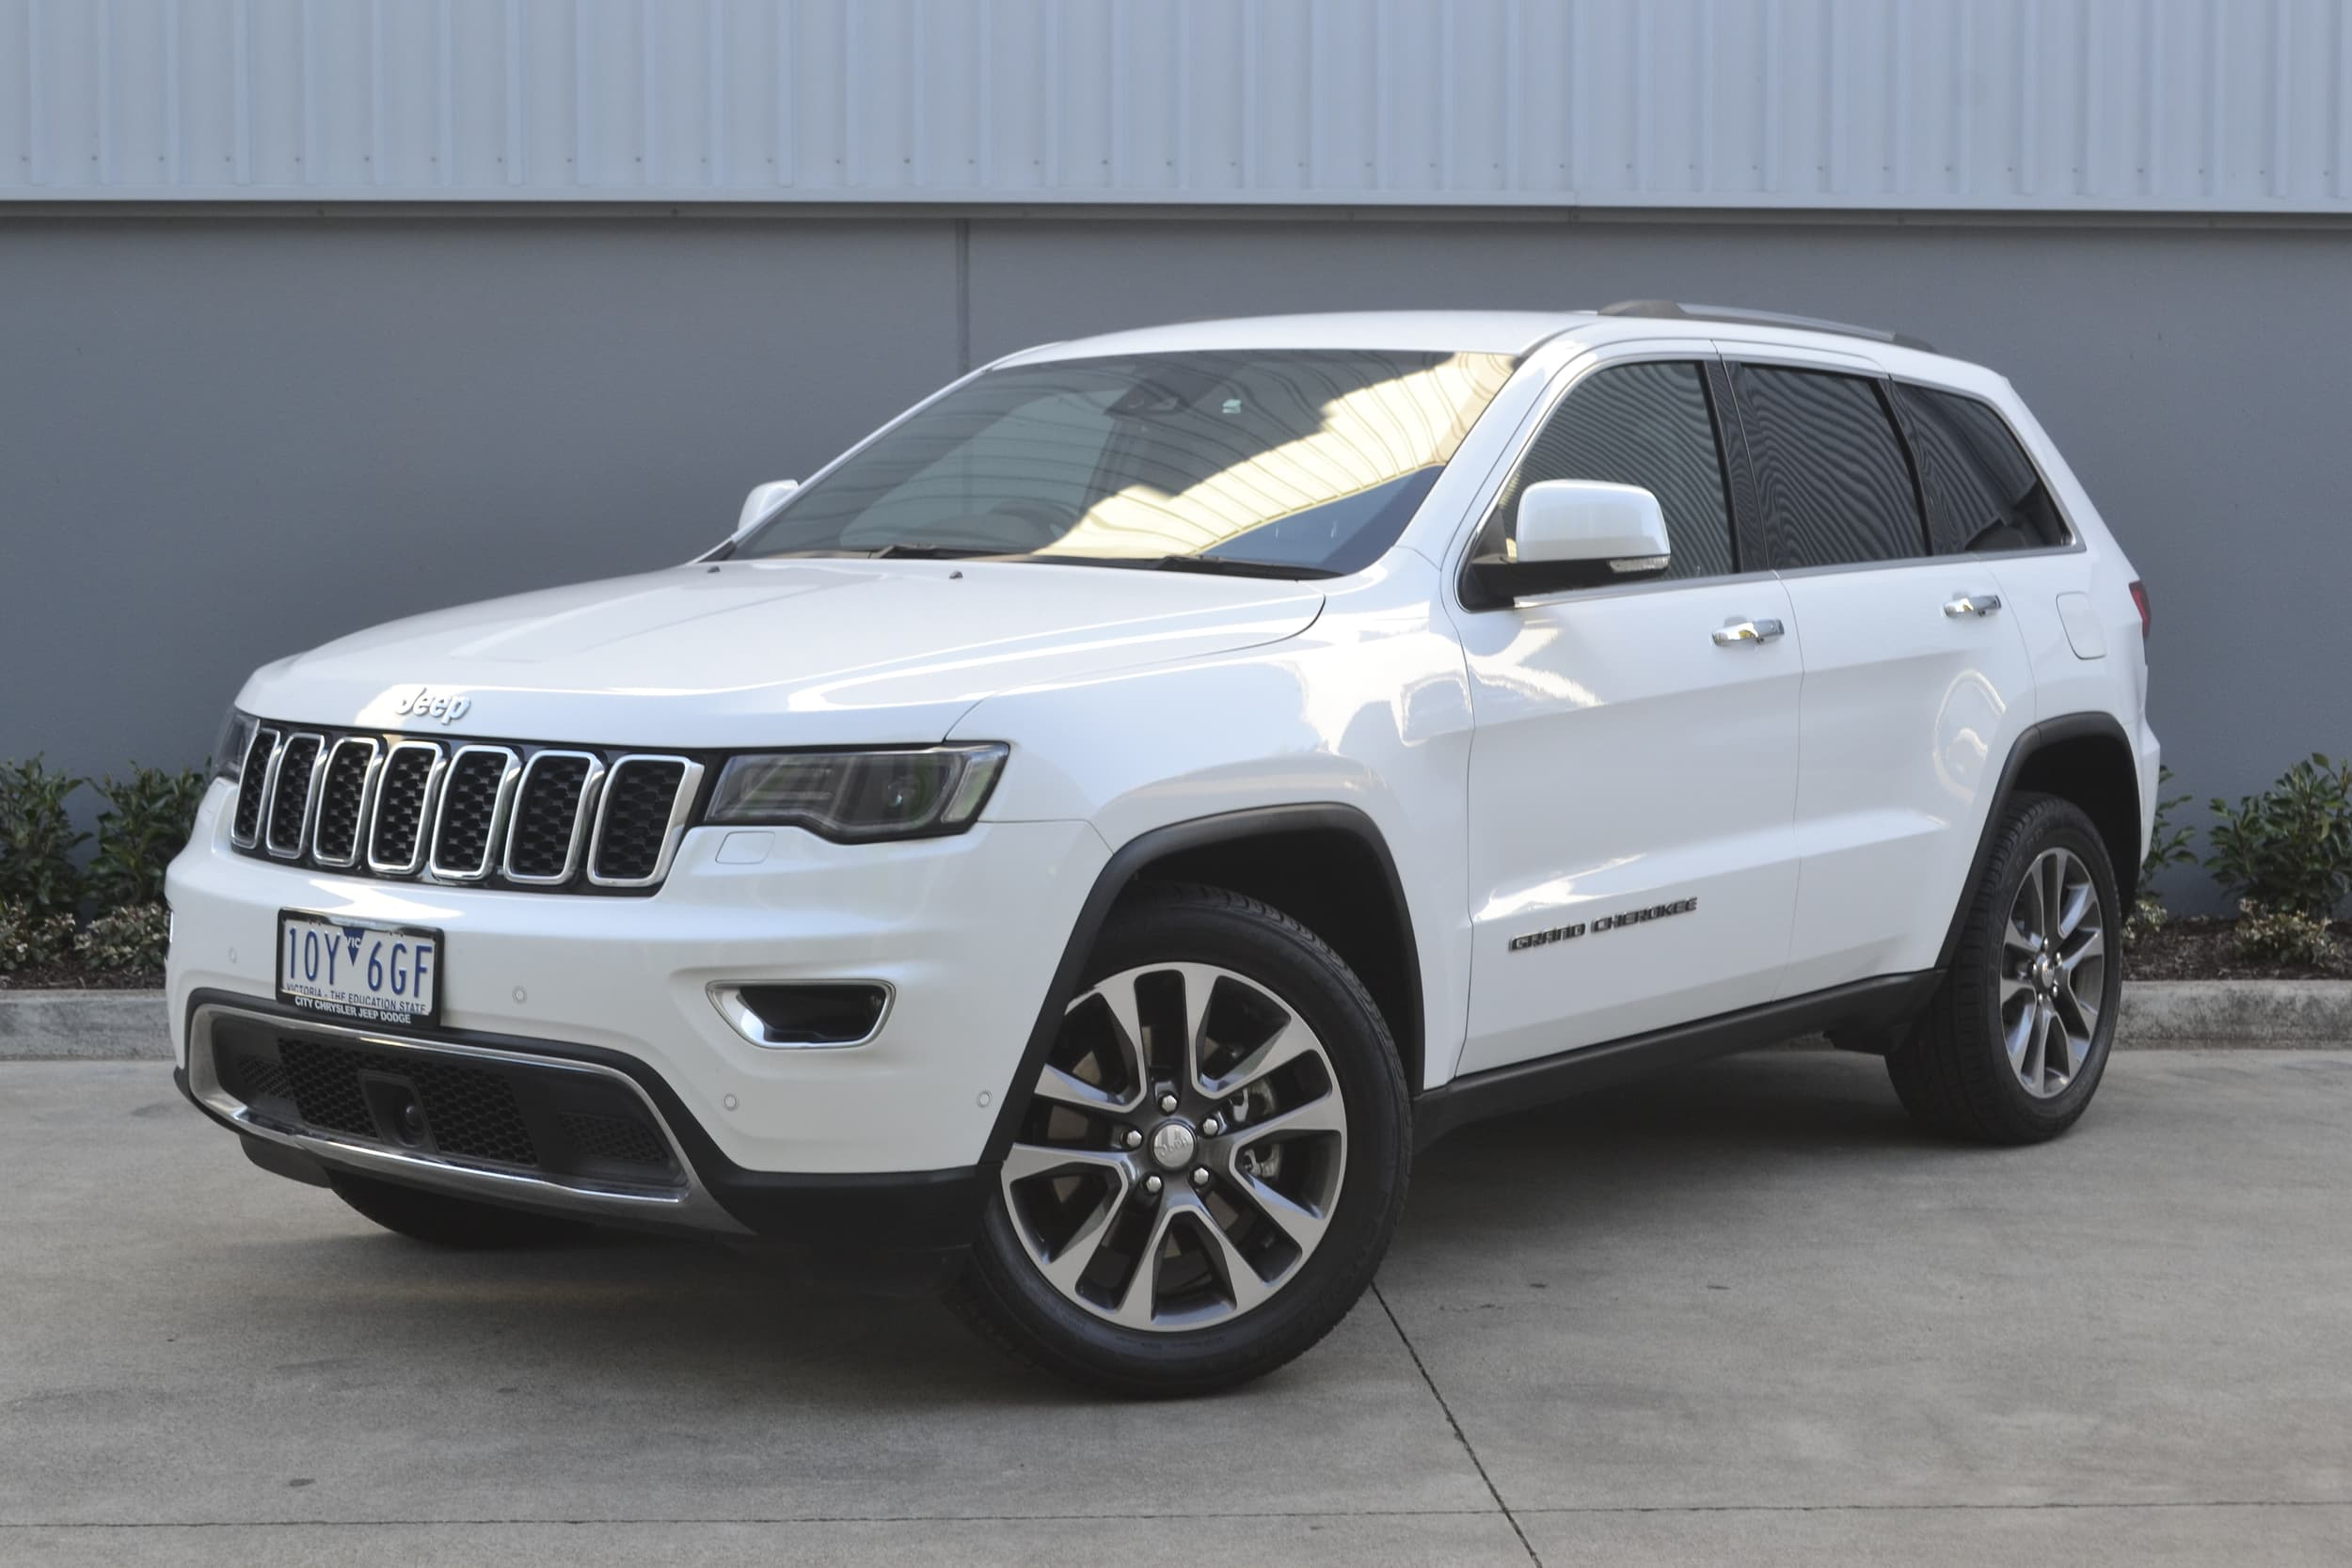 2019 Jeep Grand Cherokee Limited Auto 4x4 MY19 - image 9